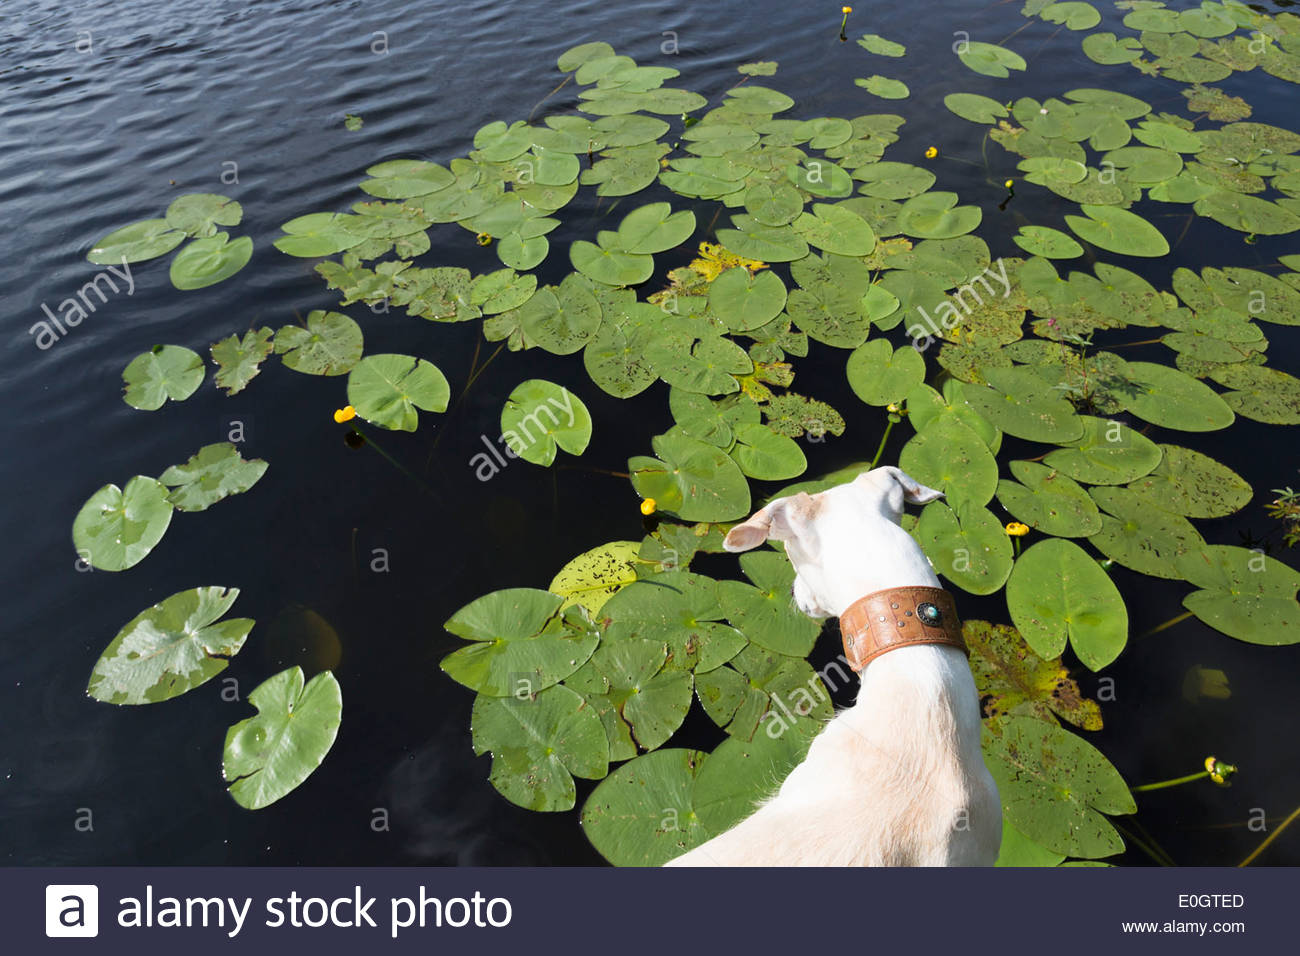 Water lilies in a pond stock photos water lilies in a pond stock dog looking at water lilies in a pond biosphere reserve spanish greyhound galgo izmirmasajfo Image collections